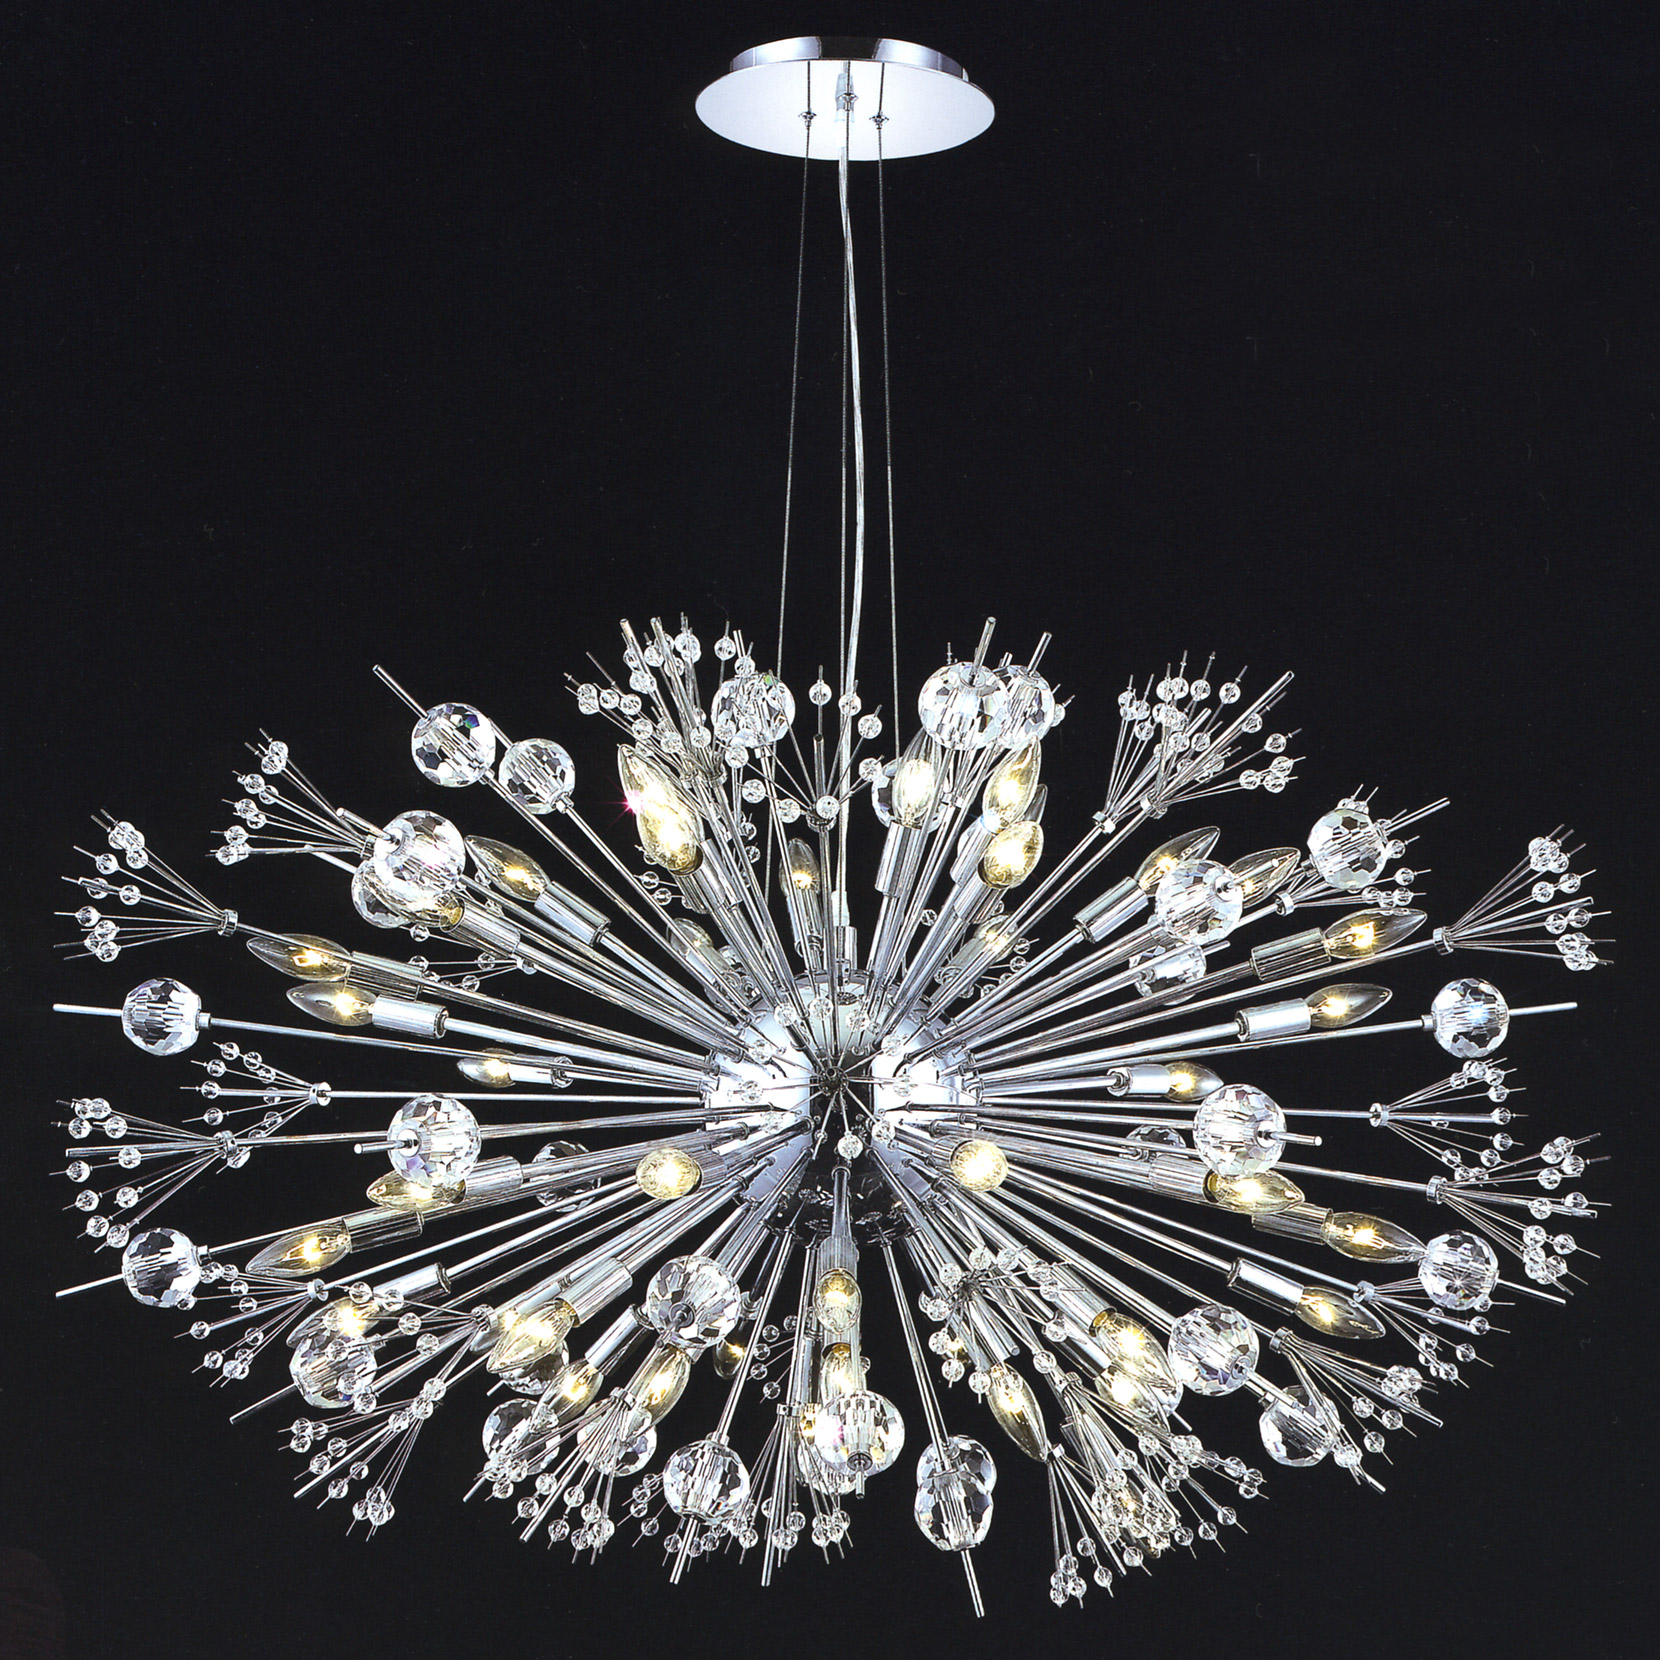 Elegant Lighting 3400g46c Ec Crystal Cyclone Chandelier